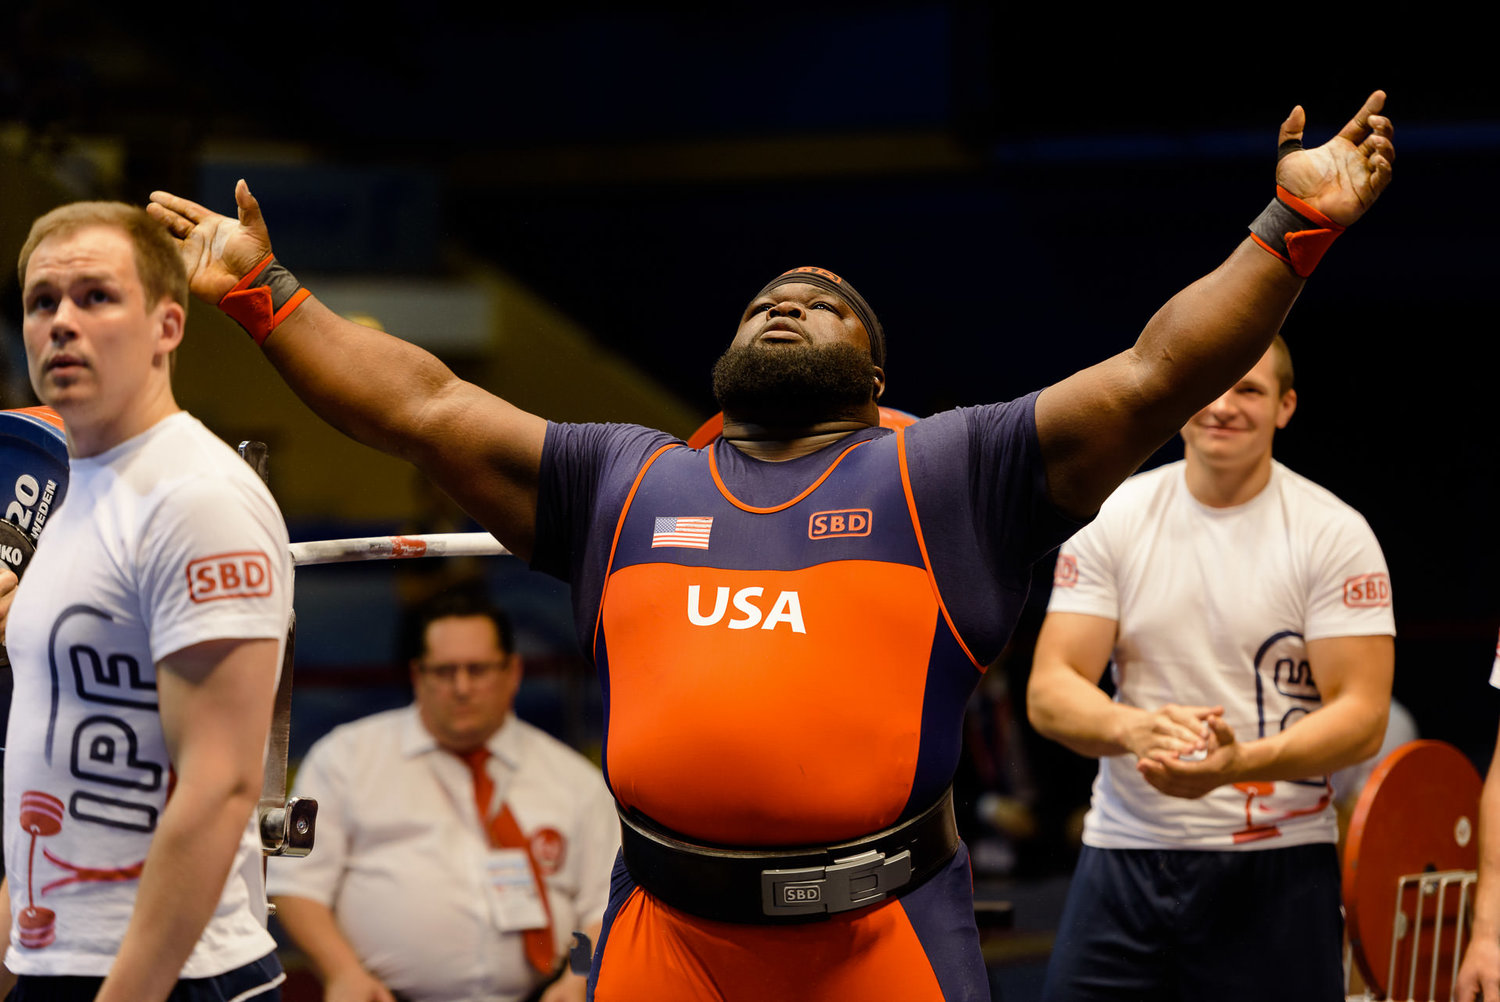 Best moments of 2017 IPF World Classic Powerlifting Championships